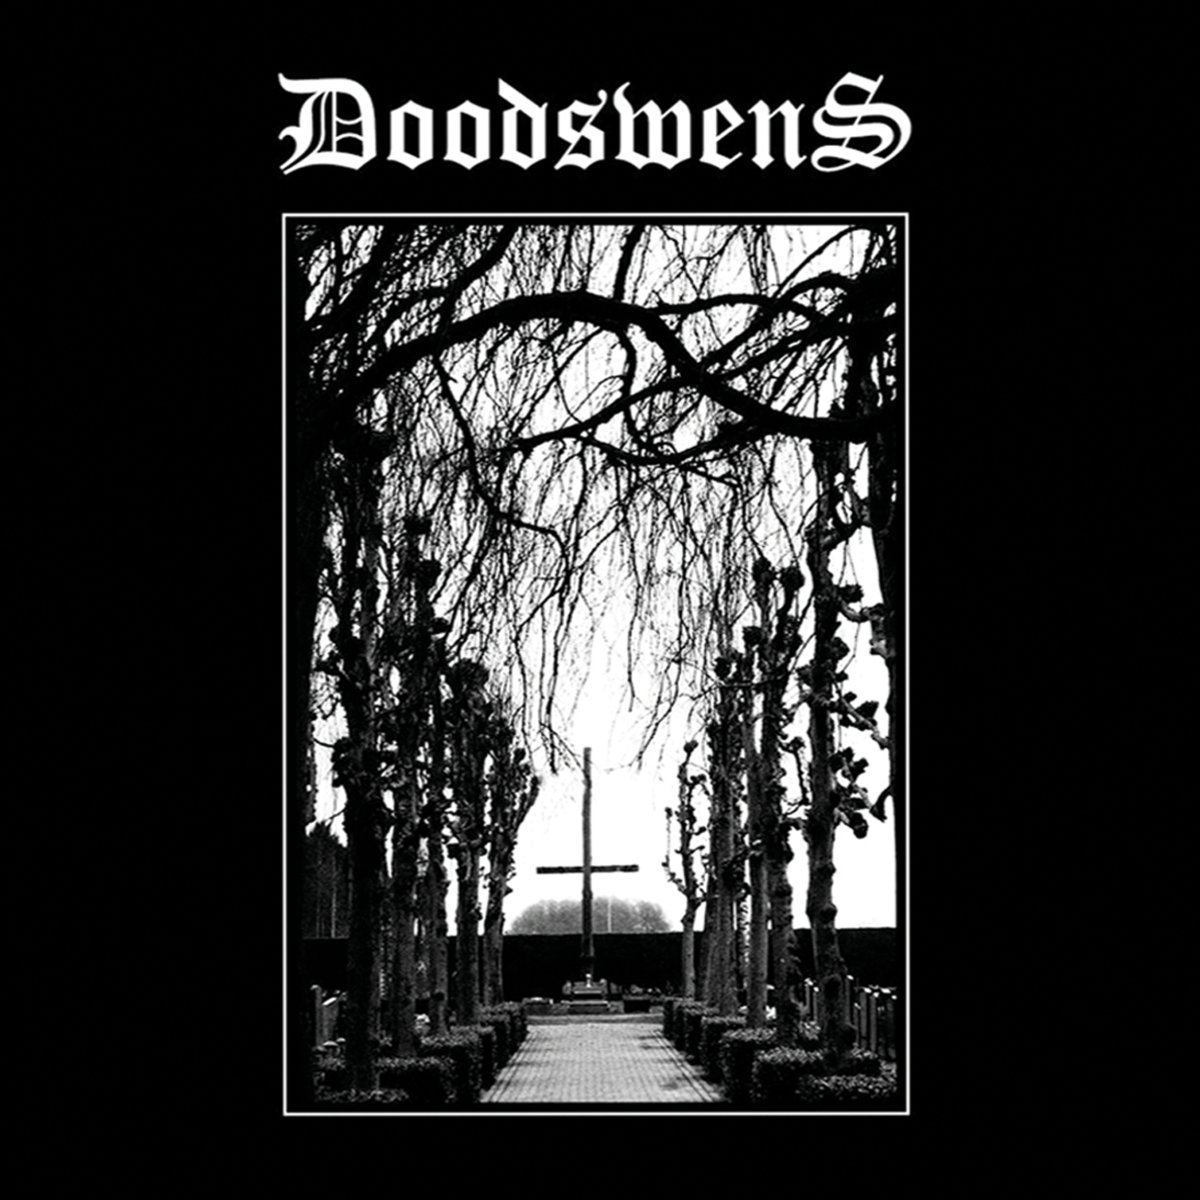 Doodswens - Demo I (2019) [FLAC] Download